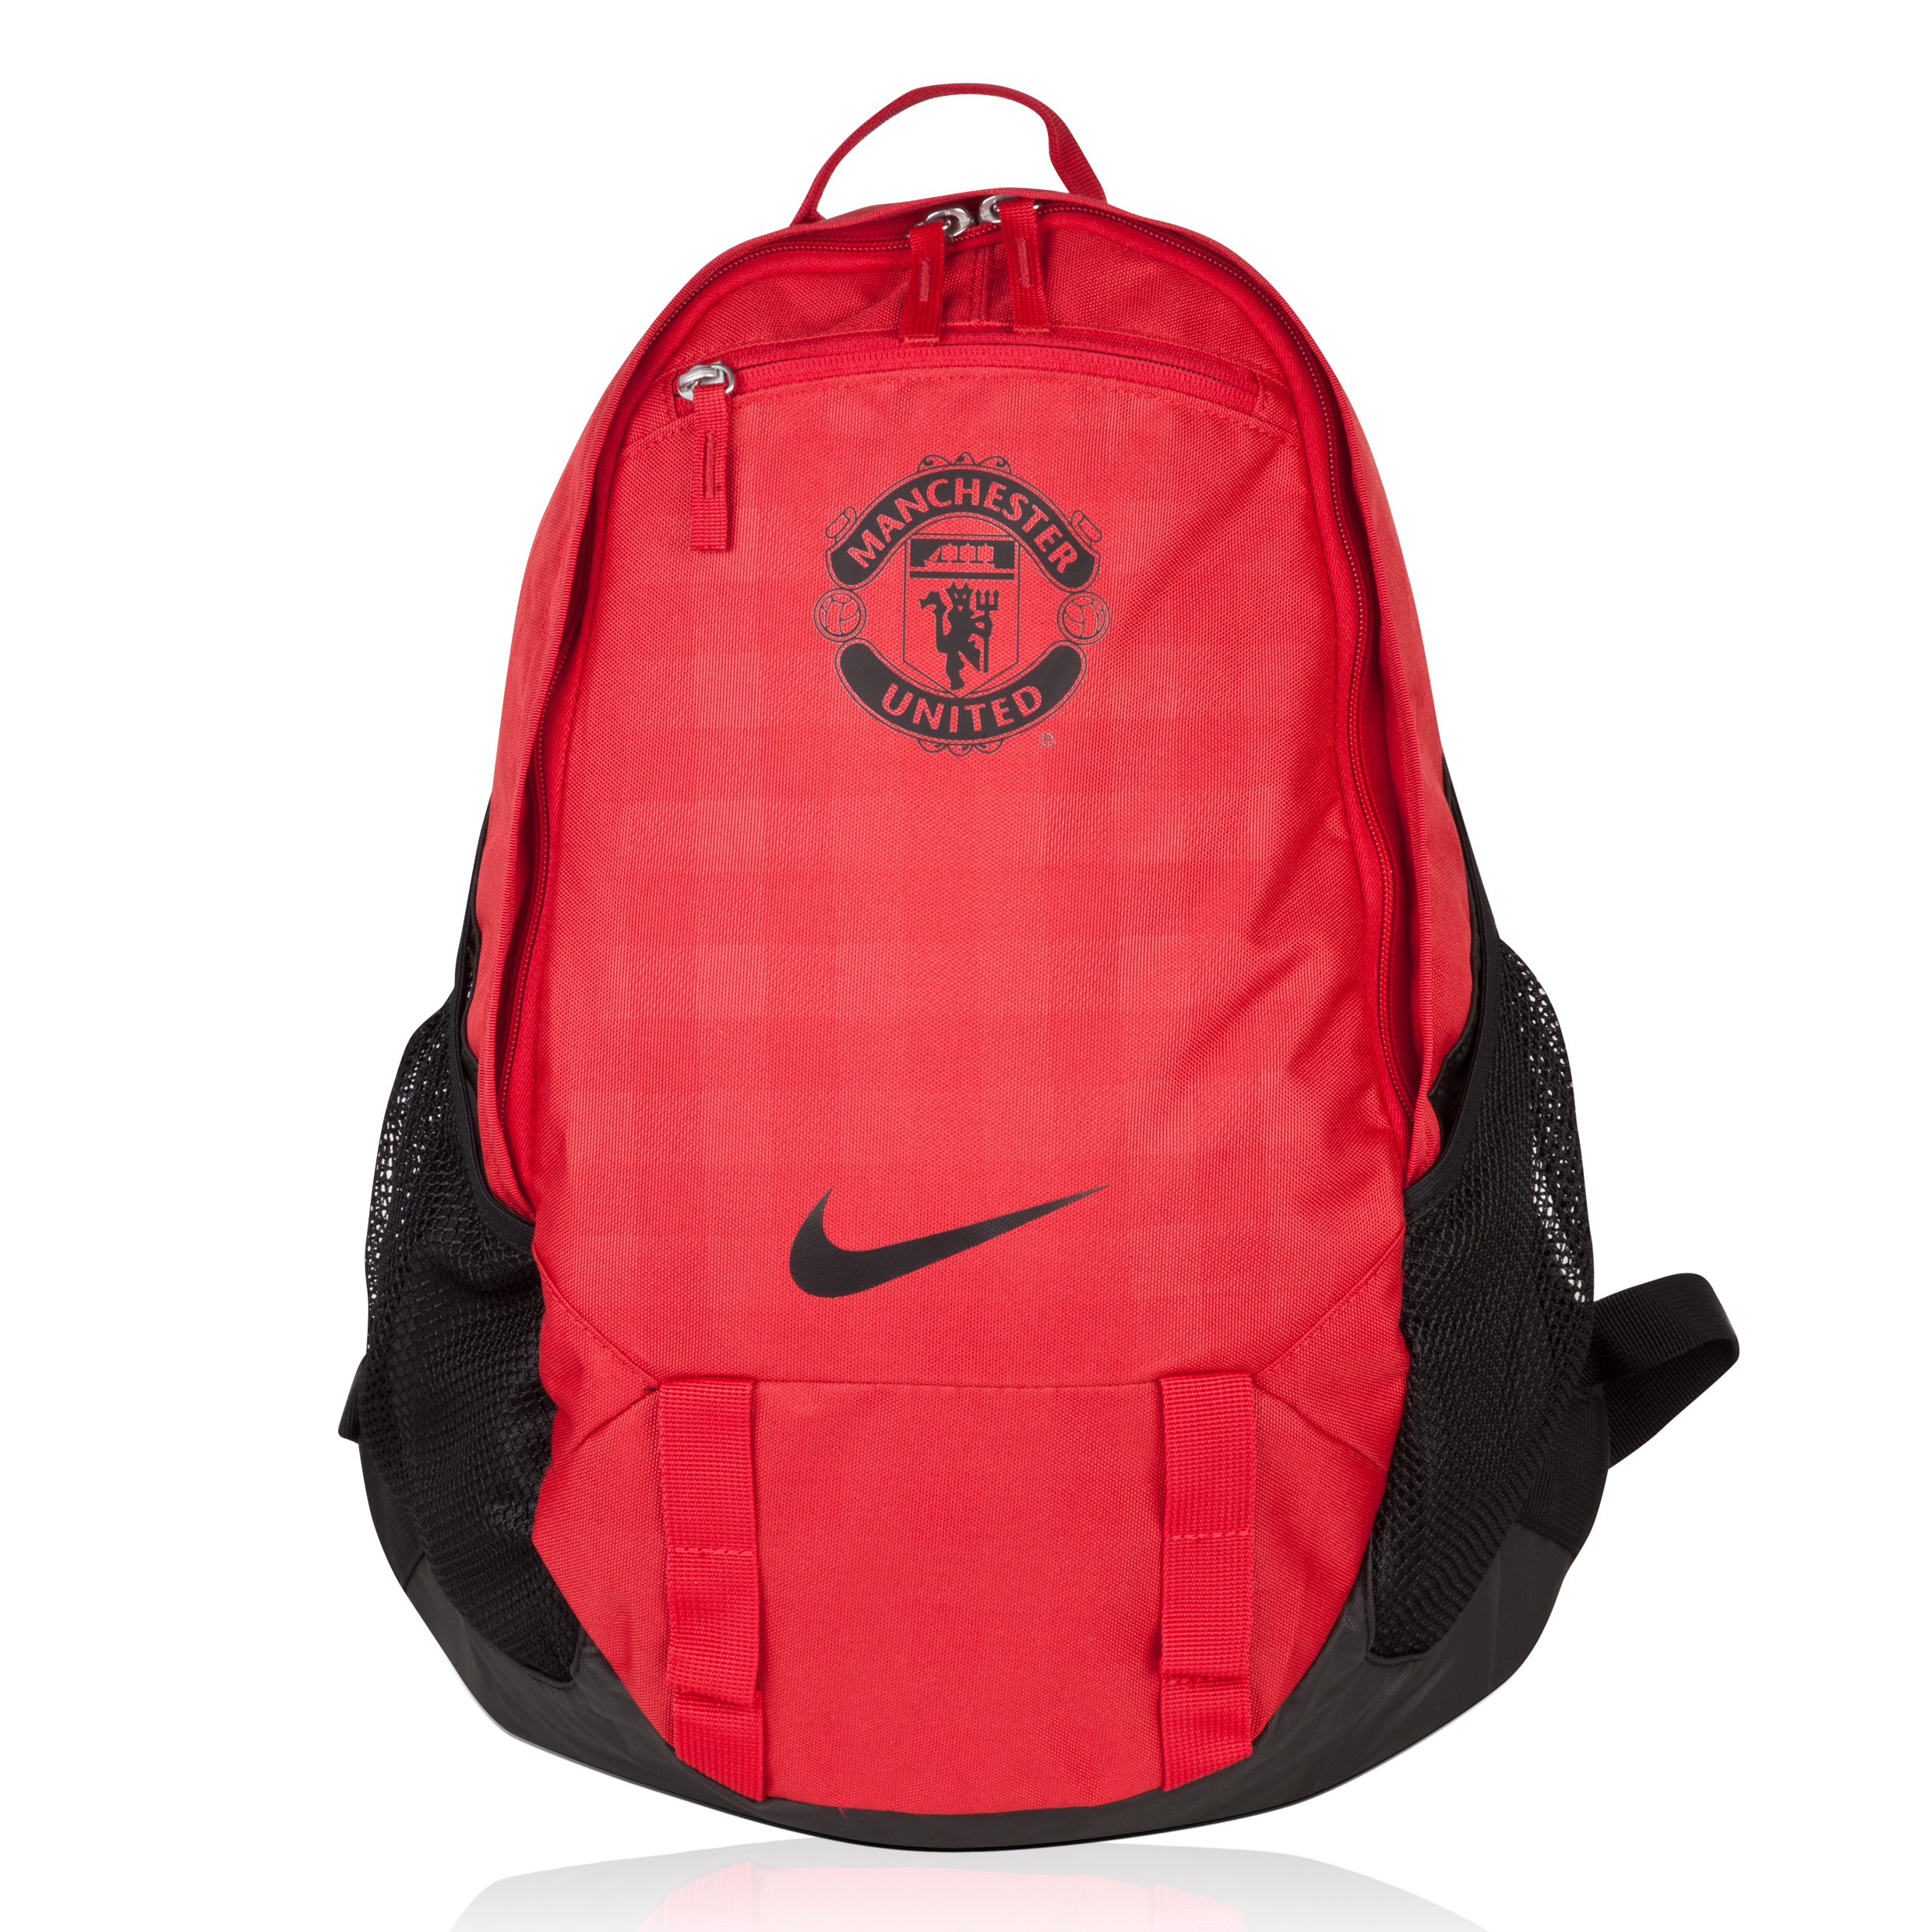 Manchester United Allegiance Offense Compact Backpack - Varsity  Red/Black